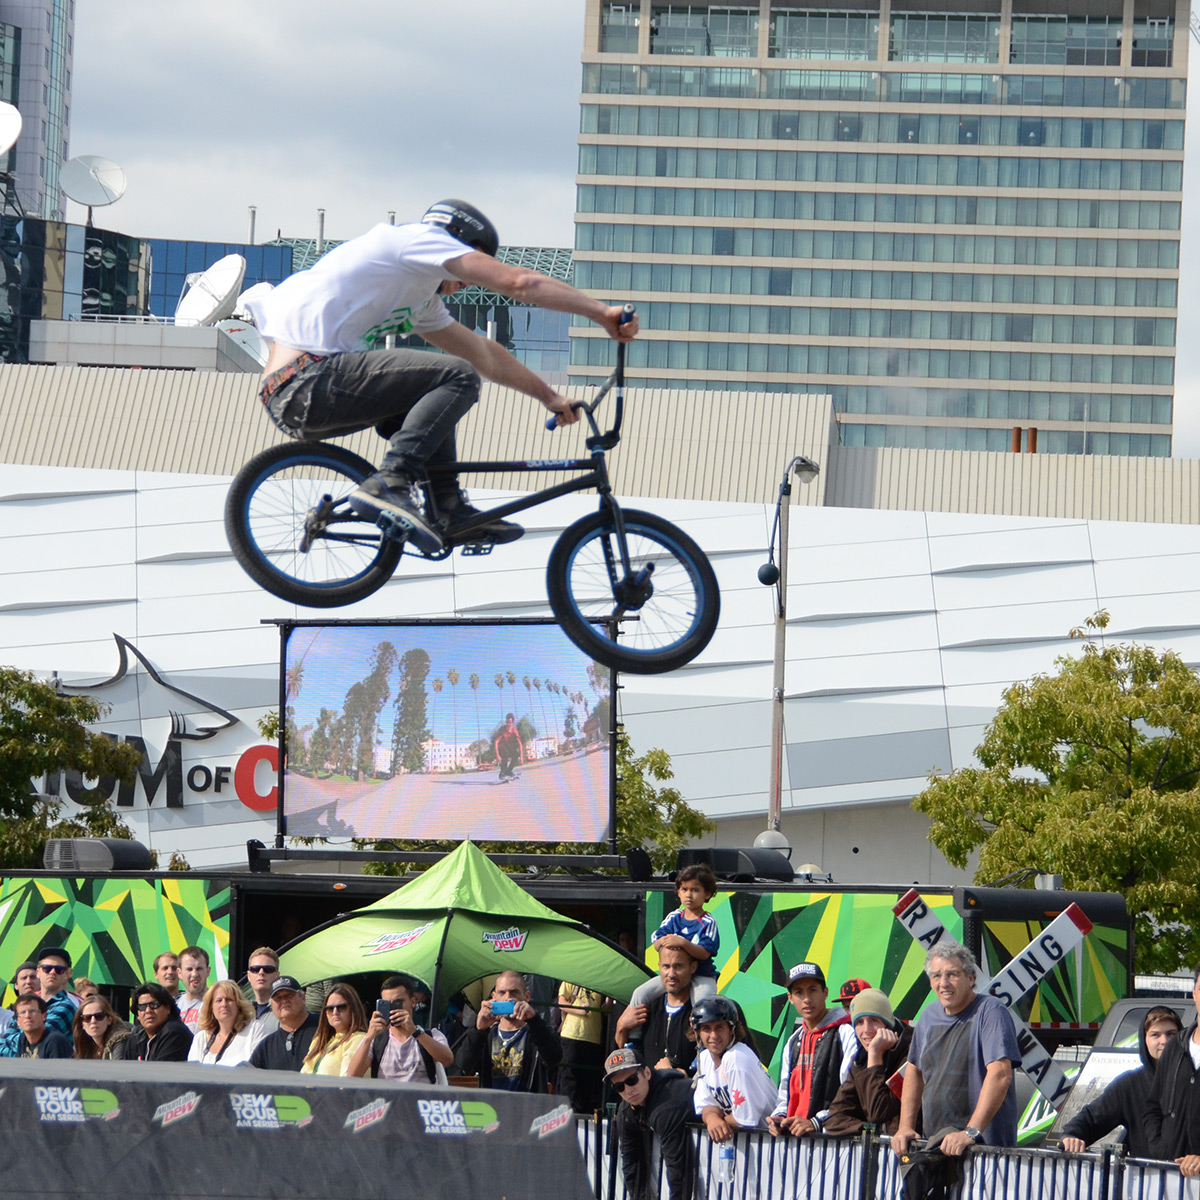 Huge 180 transfer Braden Bygrave at BMX Dew Tour Am Series in Toronto